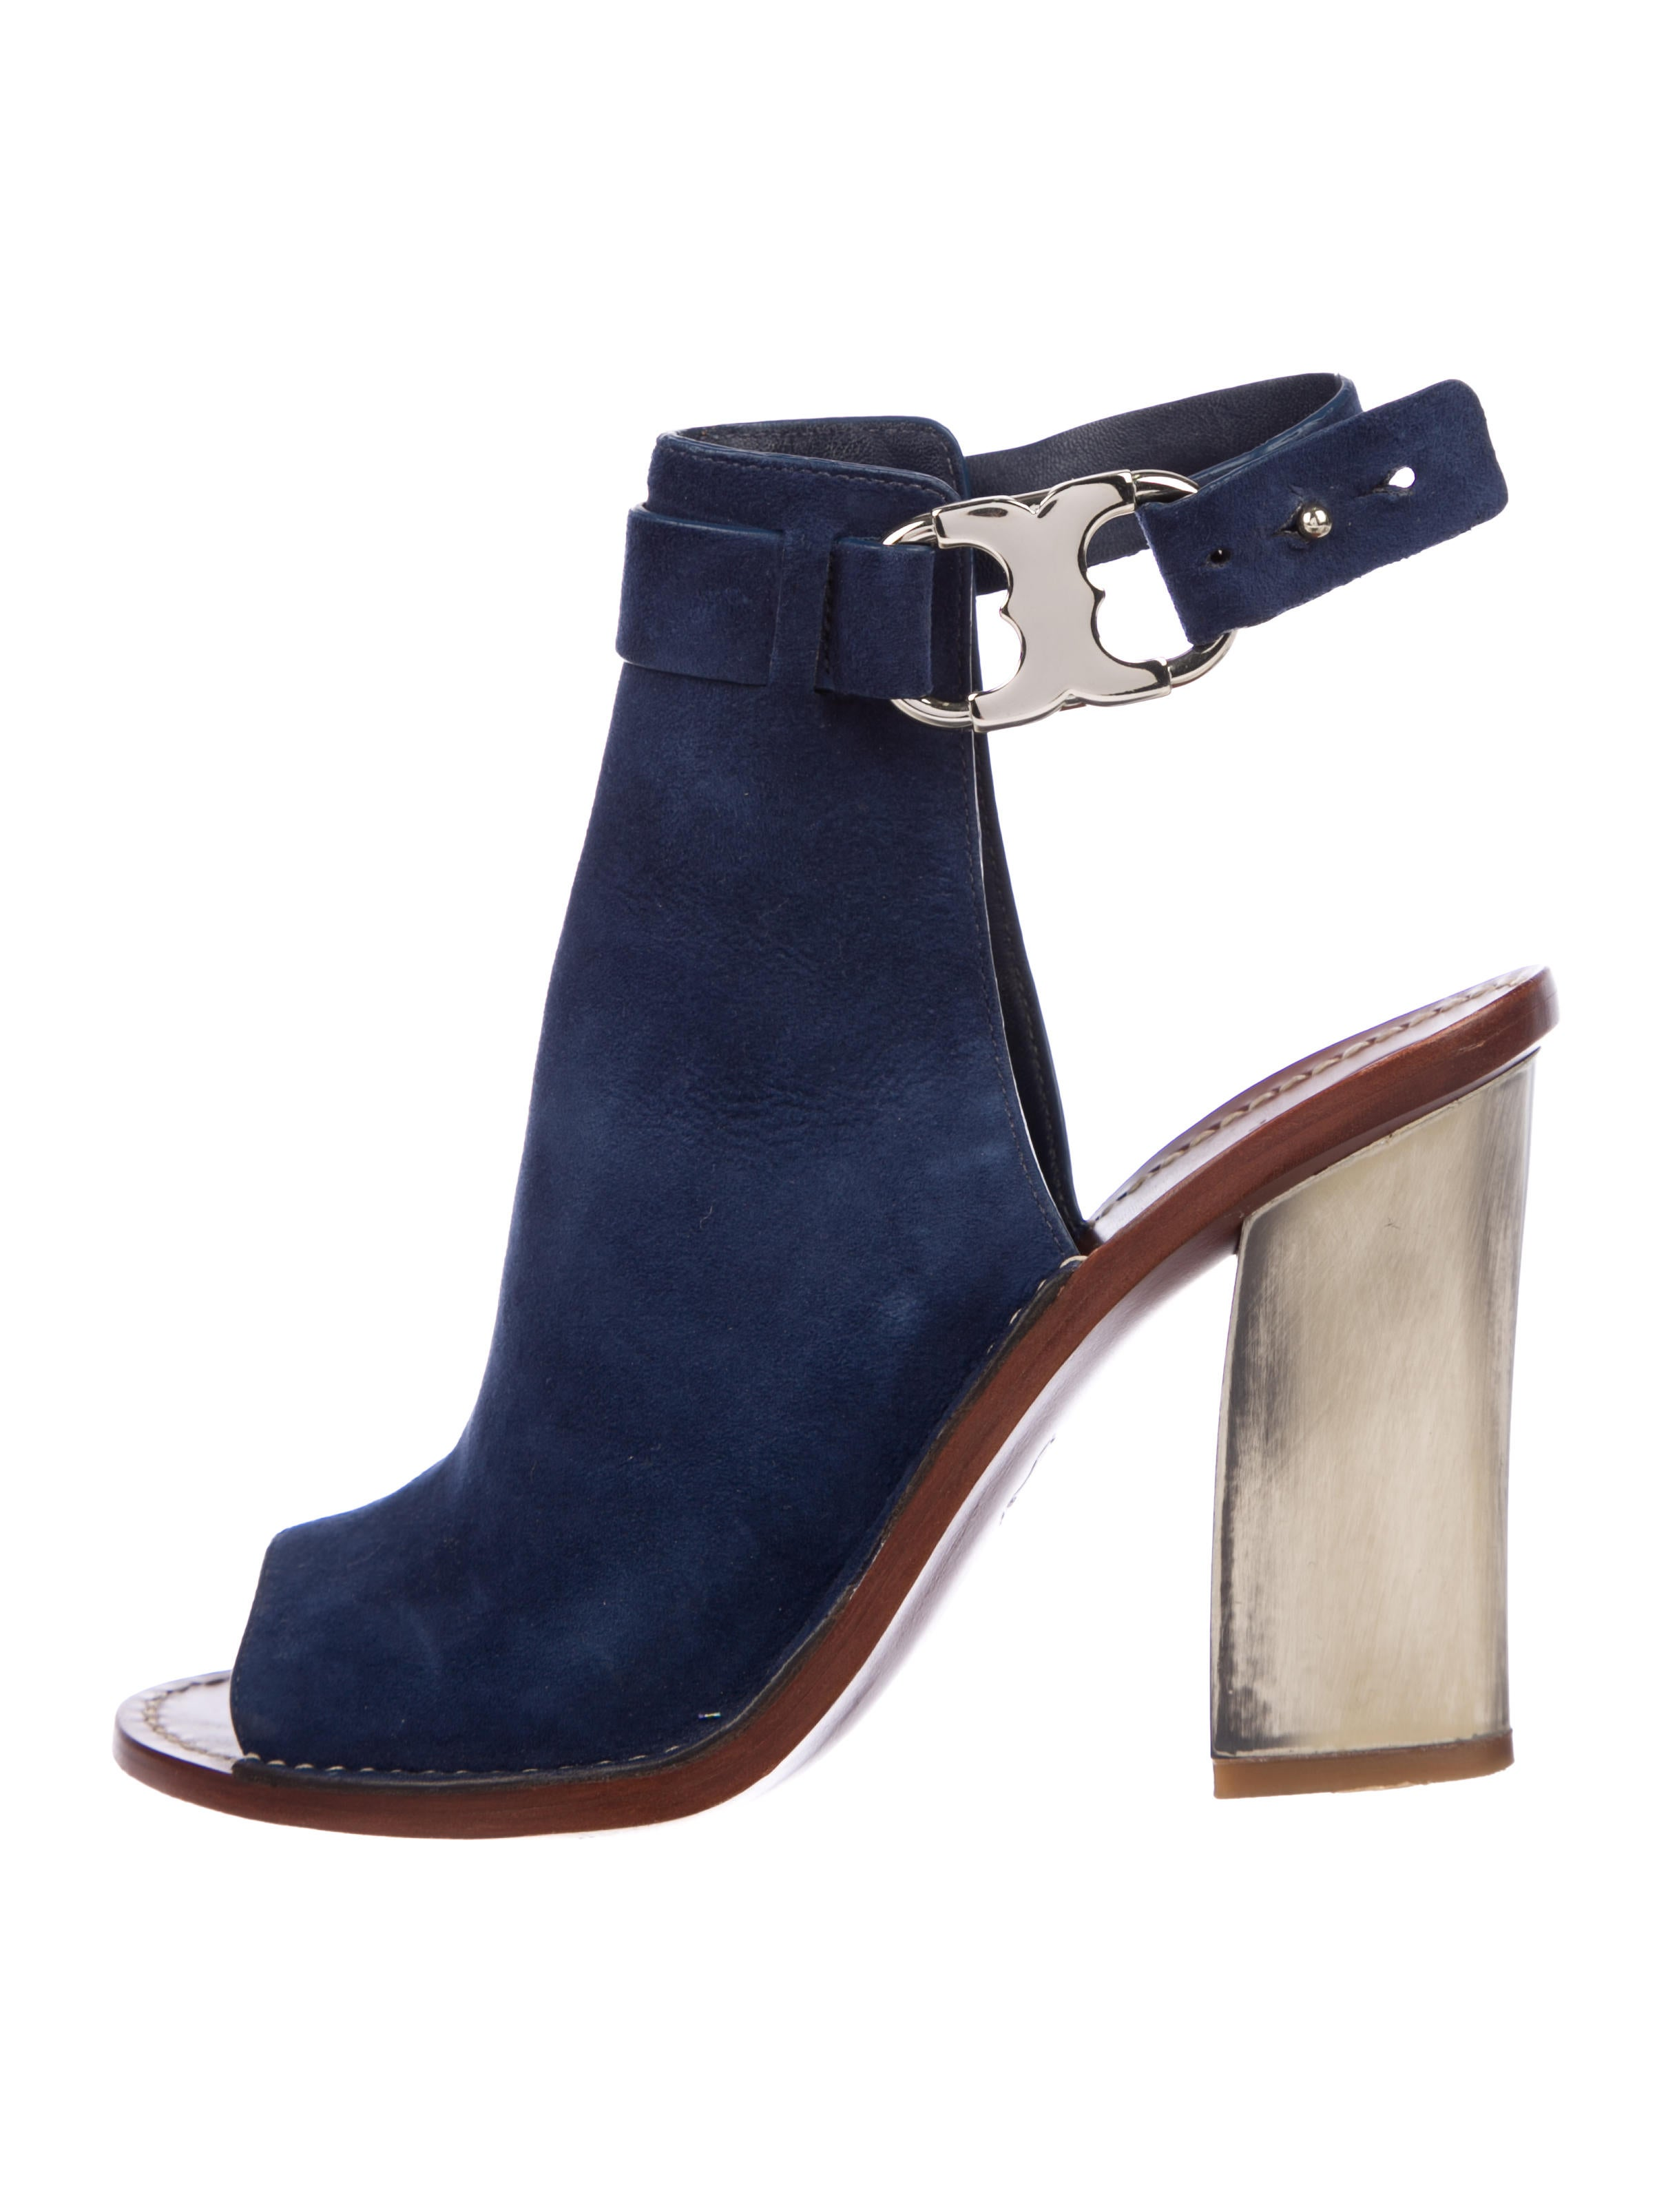 0497d0764 Tory Burch Suede Peep-Toe Booties - Shoes - WTO154682